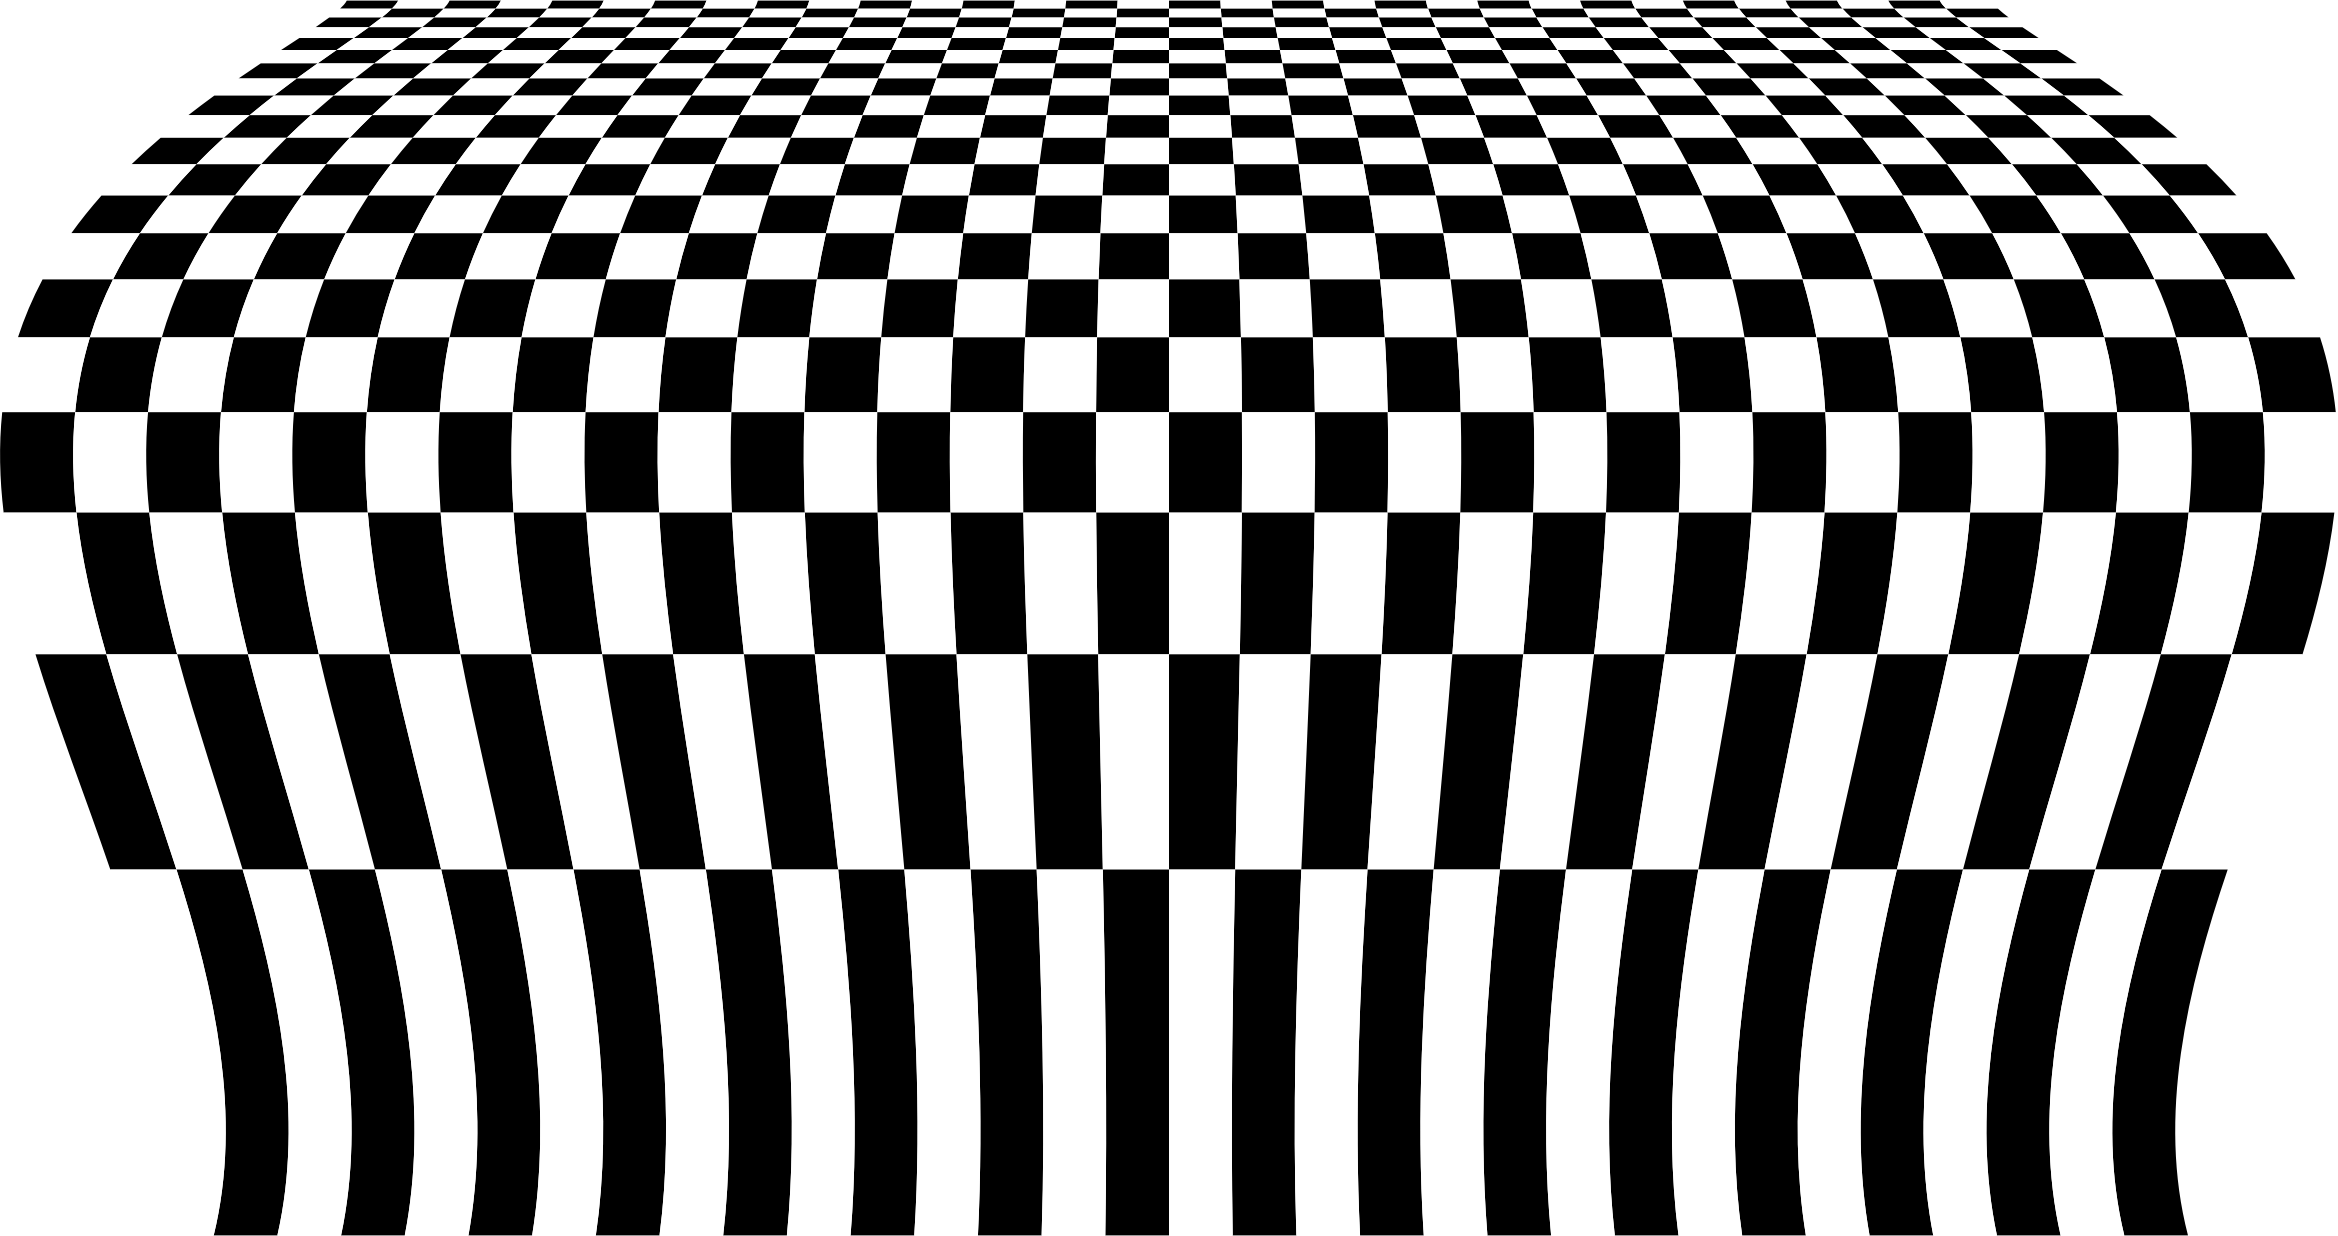 Checkerboard Perspective 2 by GDJ